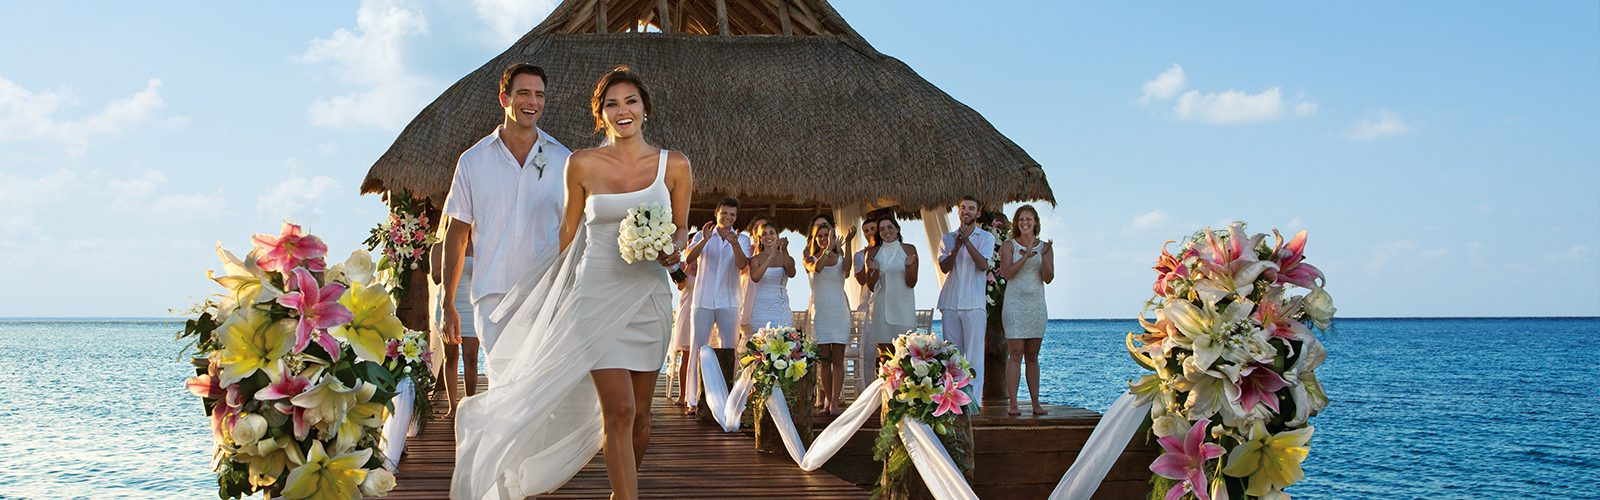 Beach Weddings Abroad Things To Do Before Your Wedding Abroad